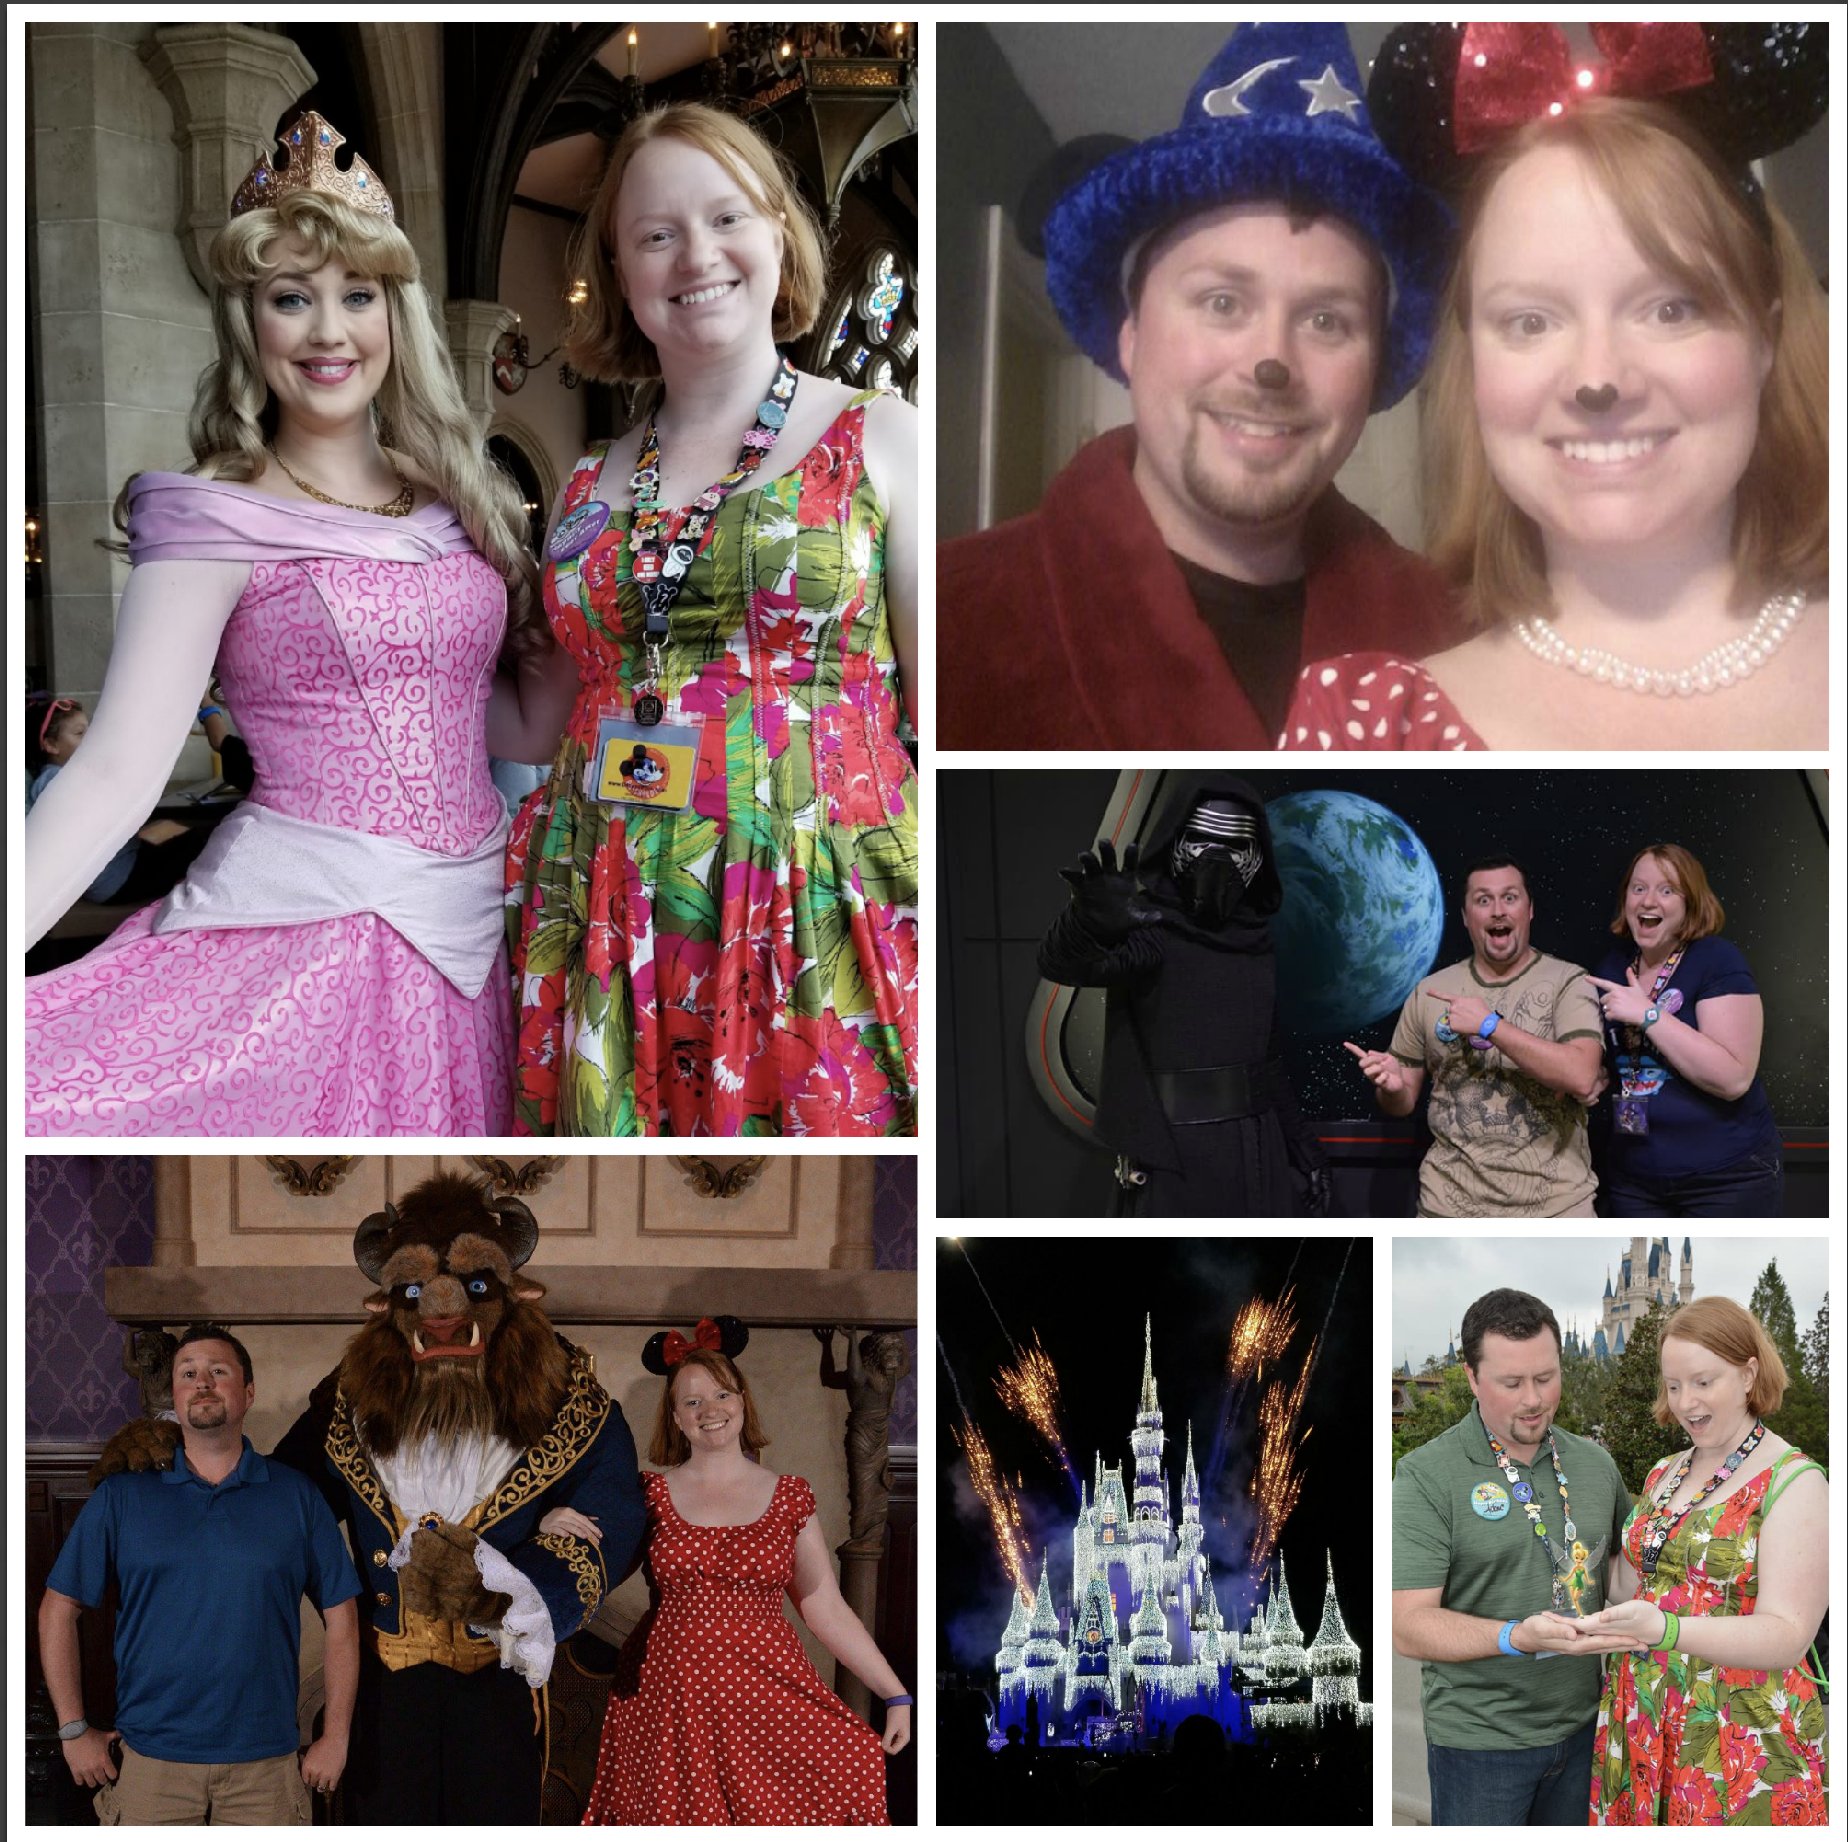 collage of Jessica with Sleeping Beauty, Jessica and Adam dressed as Mickey and Minnie Mouse, Jessica in Minnie Mouse costume with the Beast, Cinderella's Castle with fireworks, Jessica and Adam with Tinkerbelle